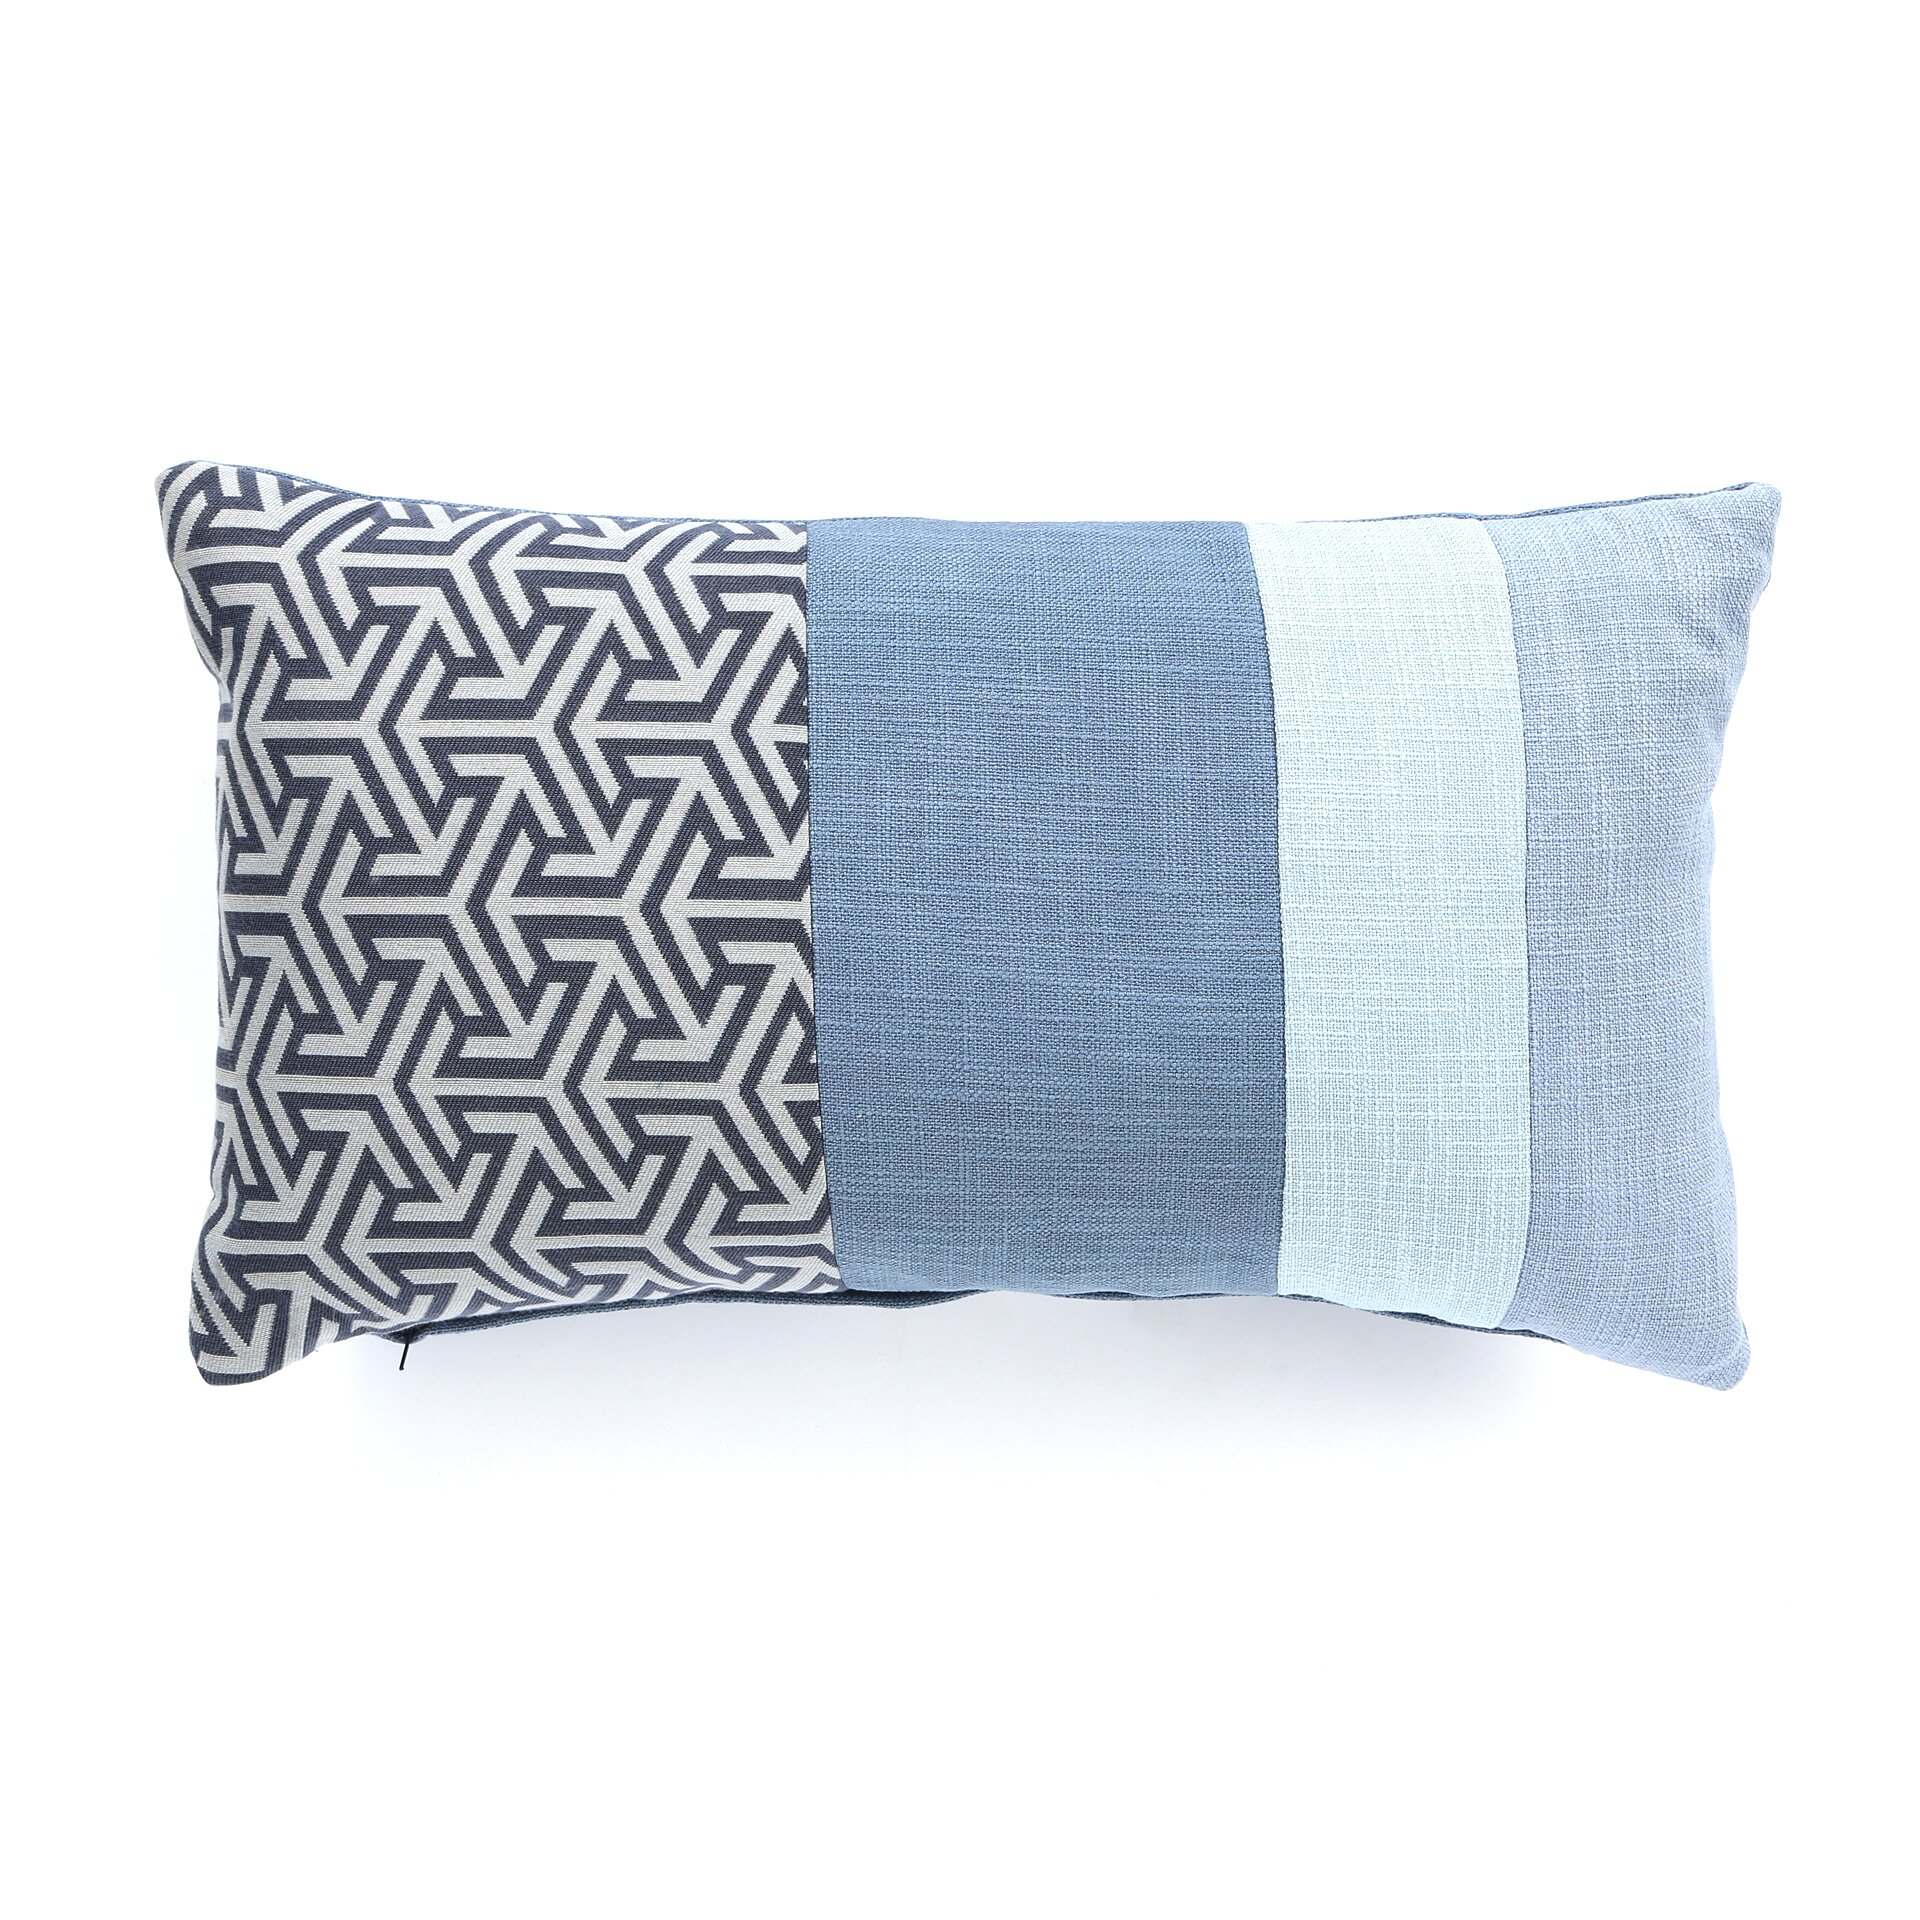 Decorative Pillow Wayfair : Eastern Accents Mondrian Throw Pillow & Reviews Wayfair.ca